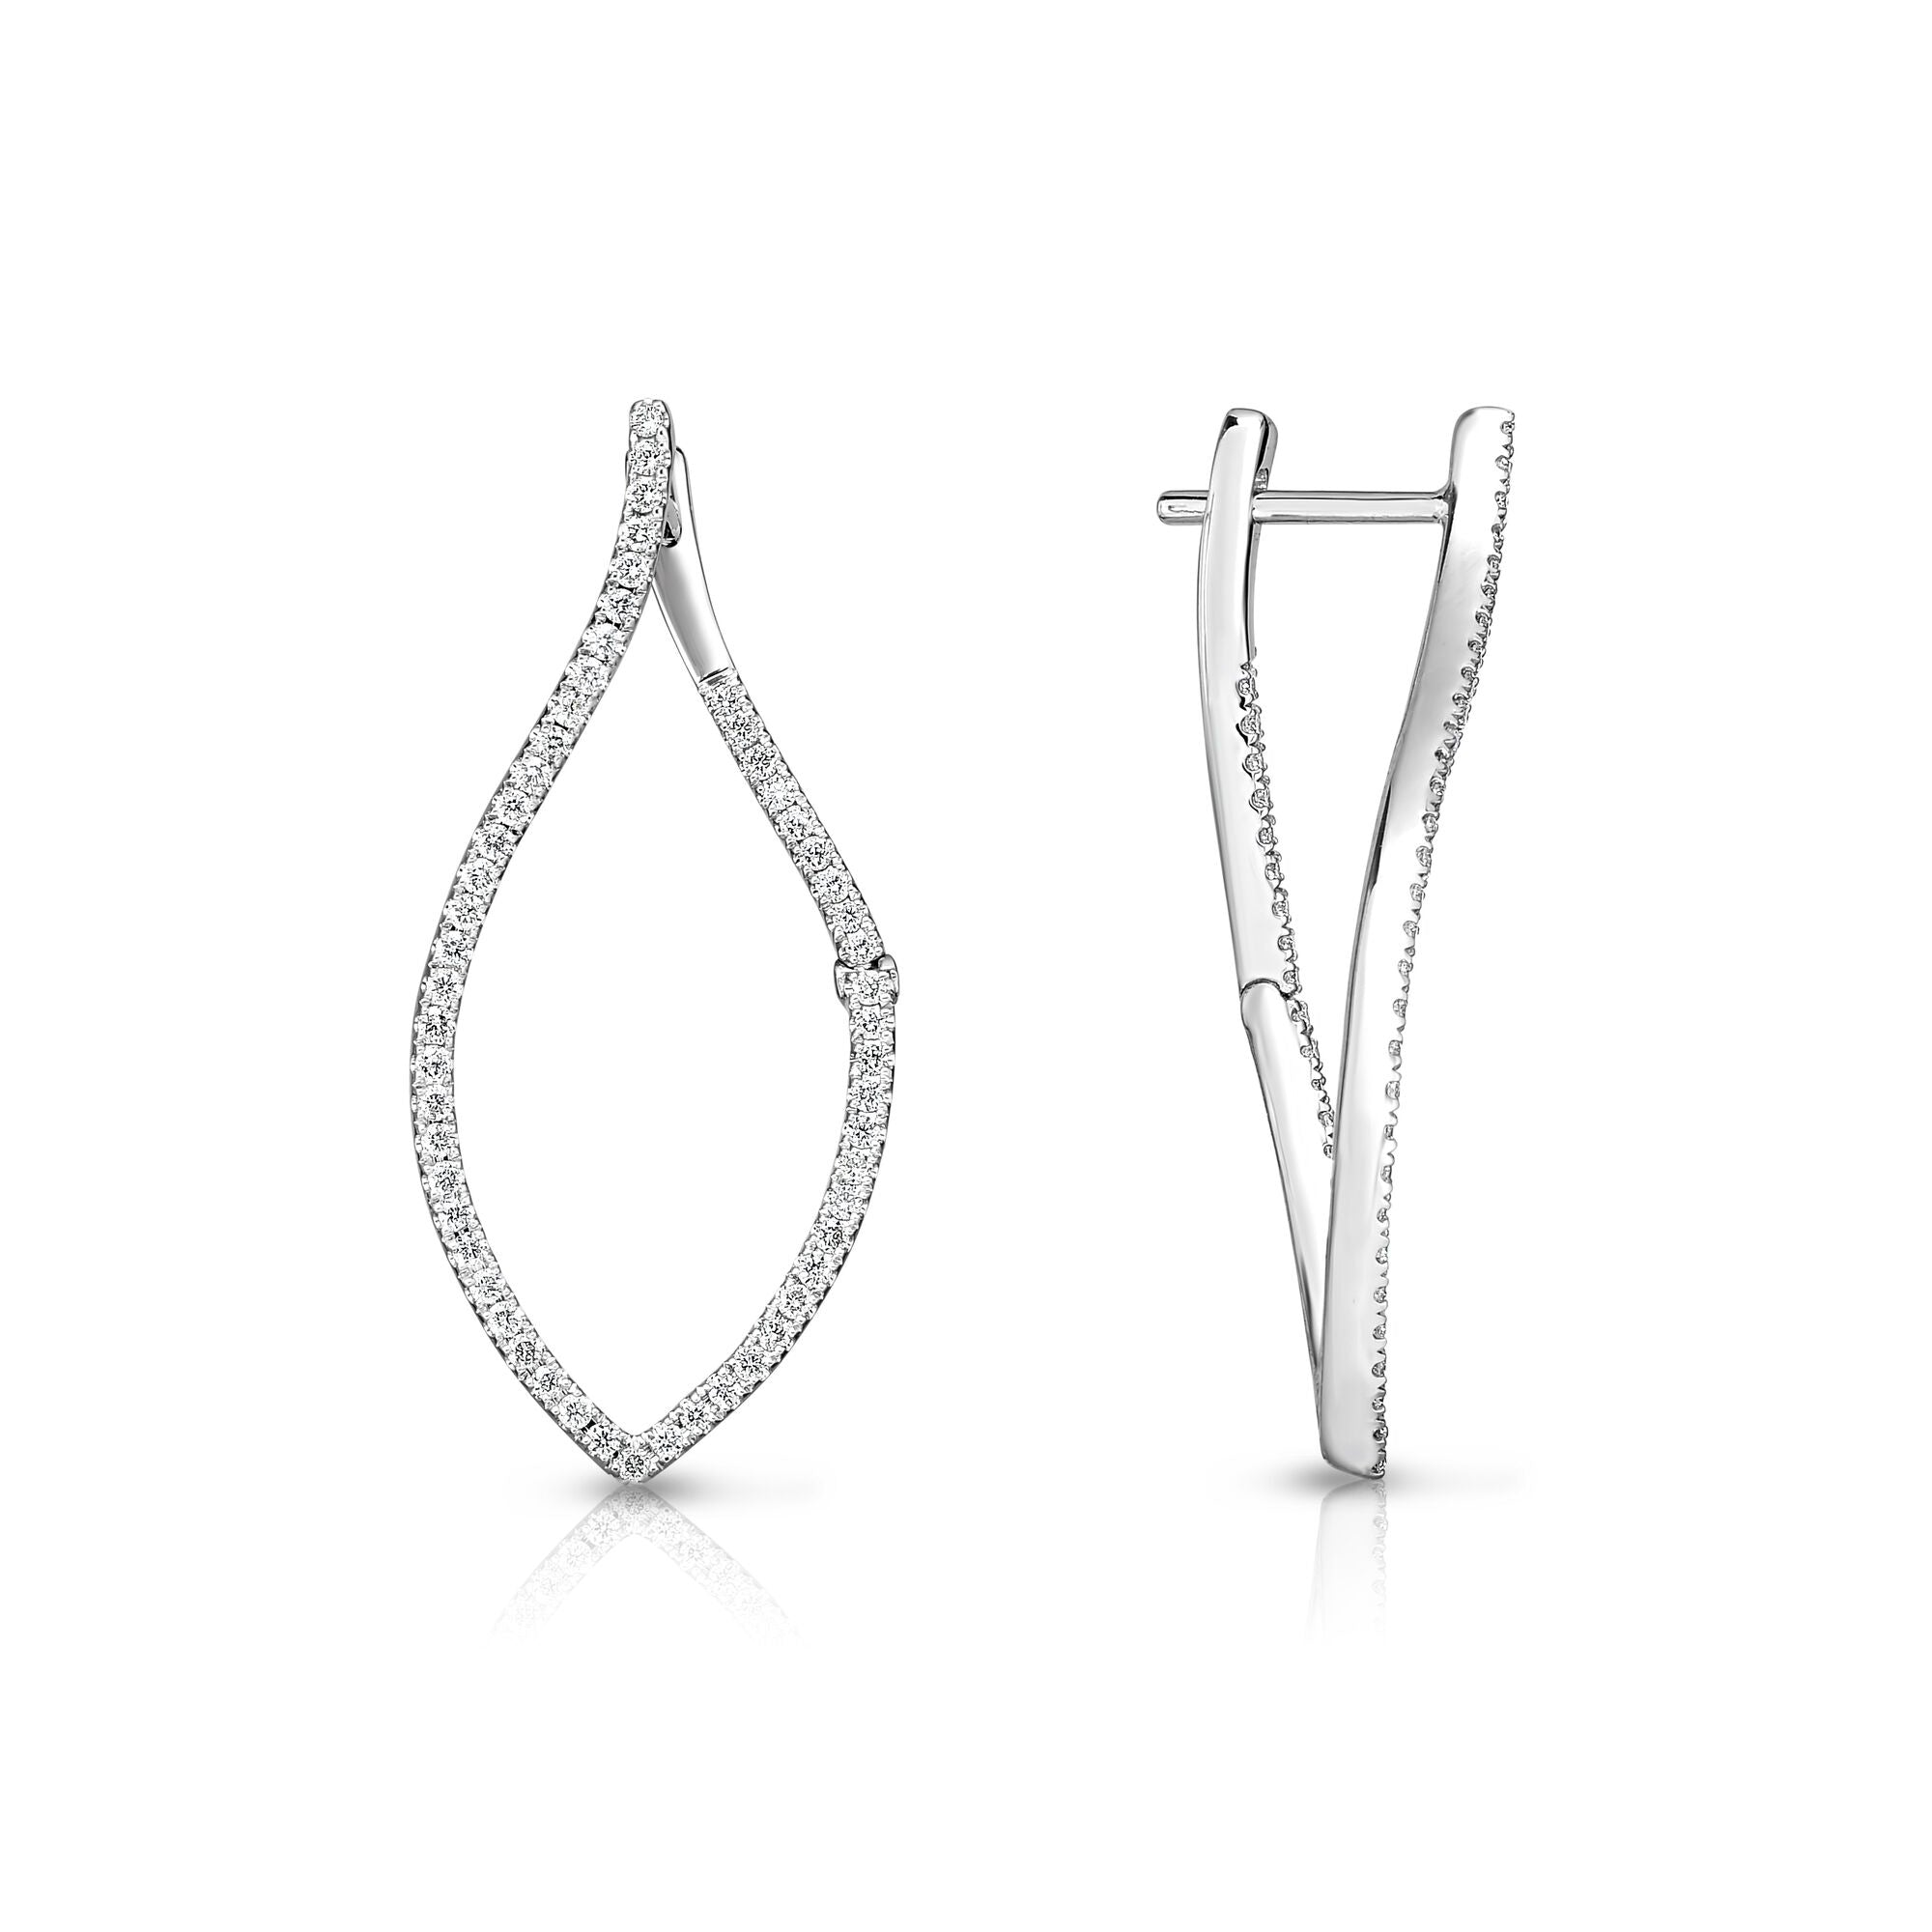 Offset Open Leaf Diamond Earrings, 14K White Gold